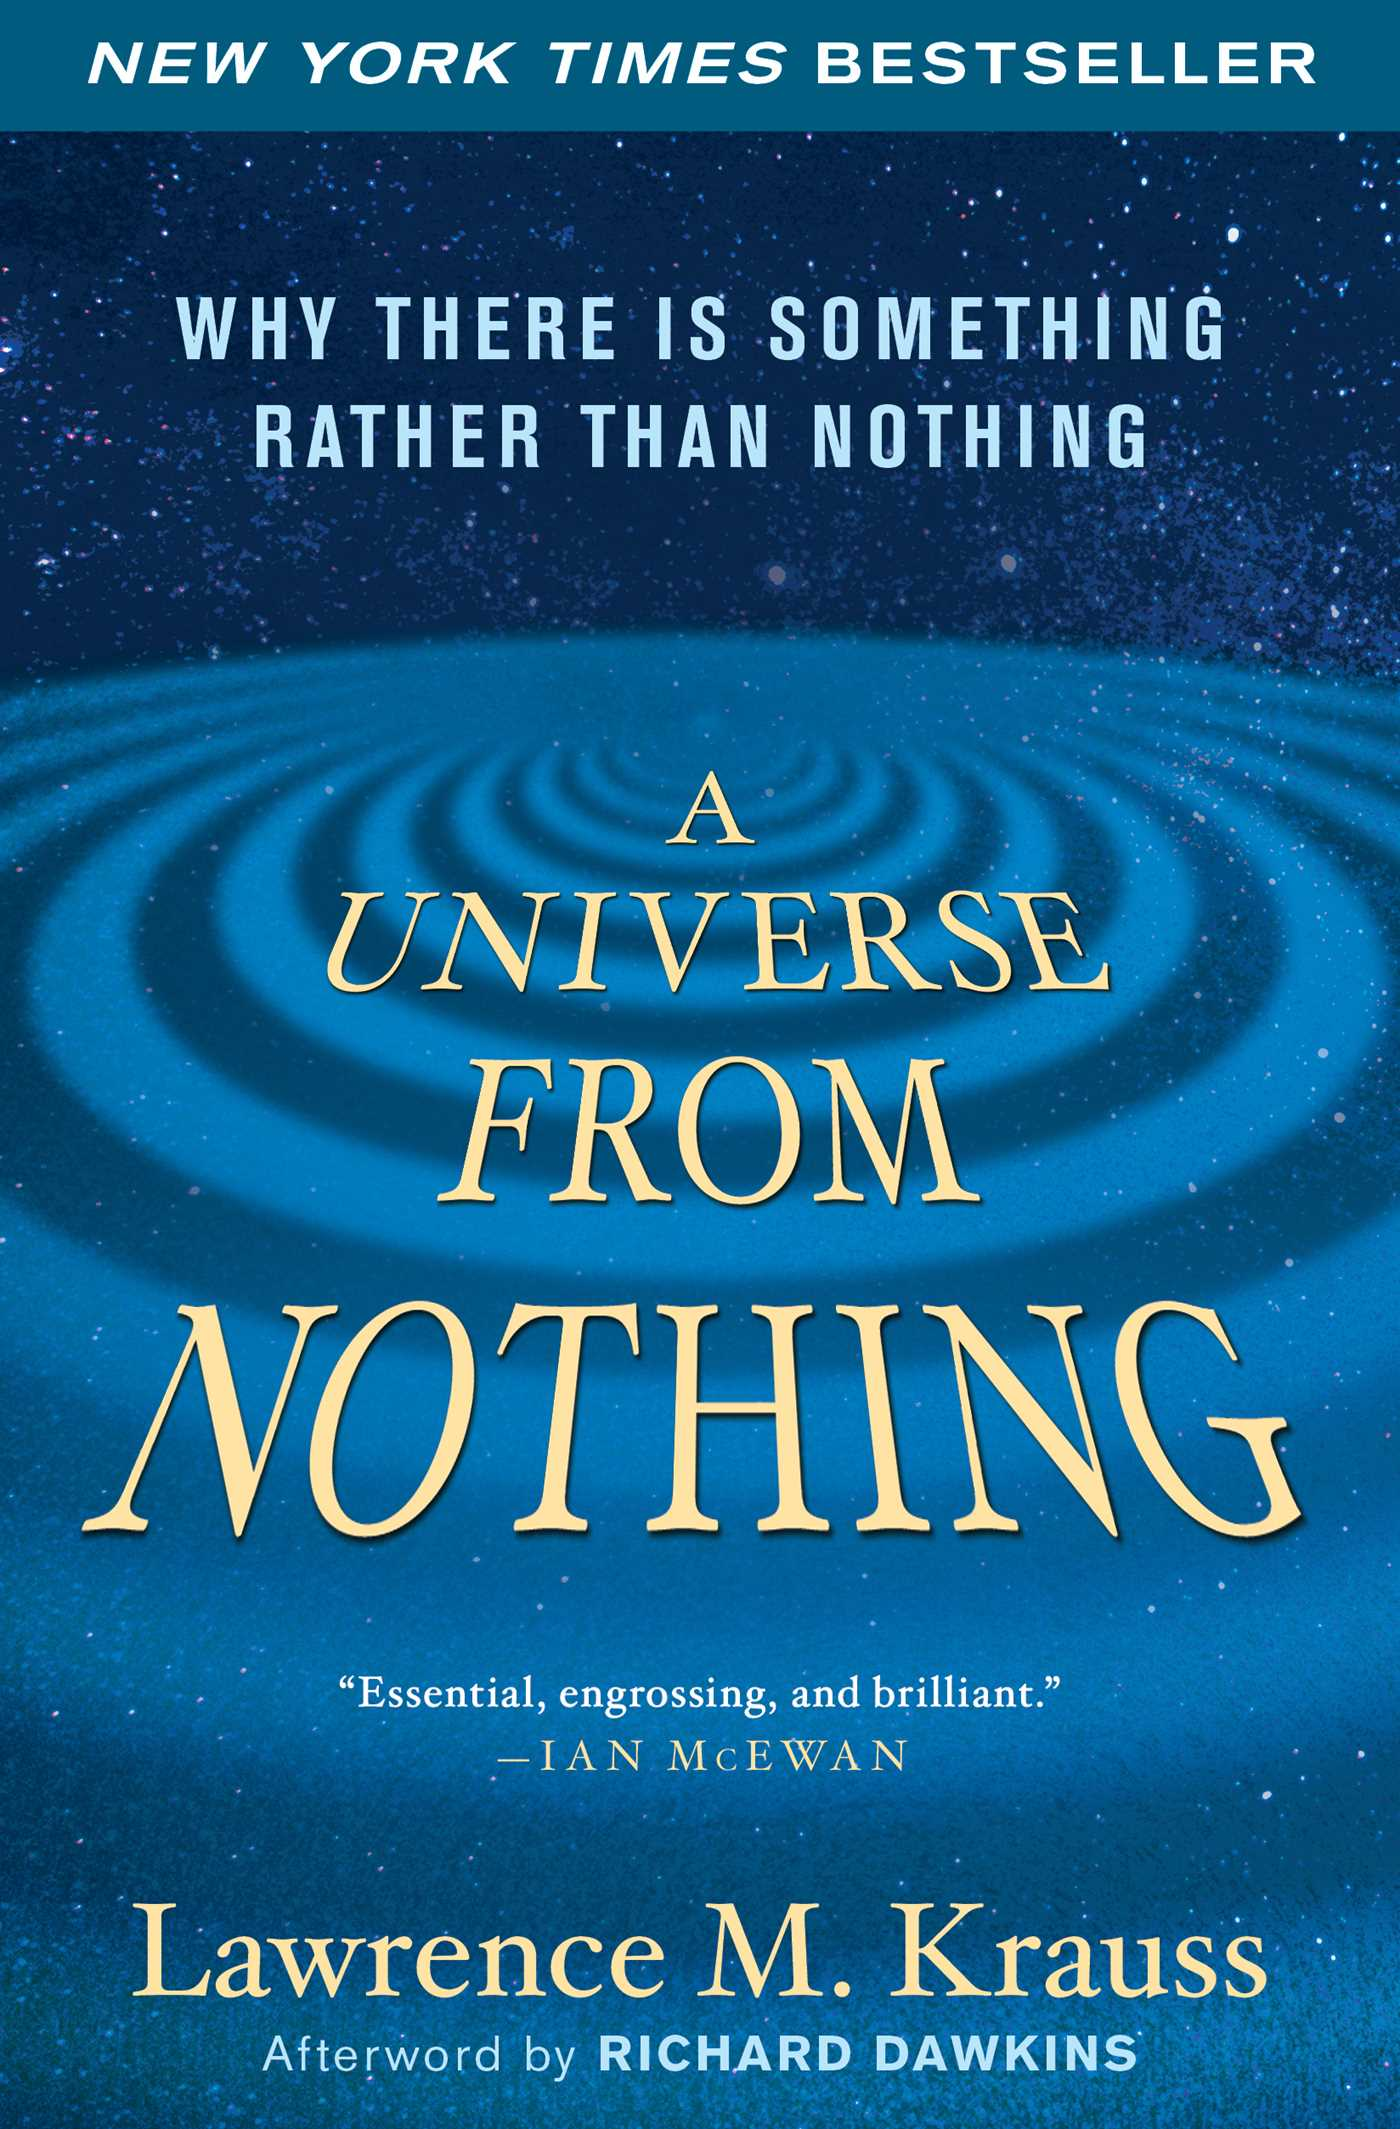 Universe-from-nothing-9781451624472_hr